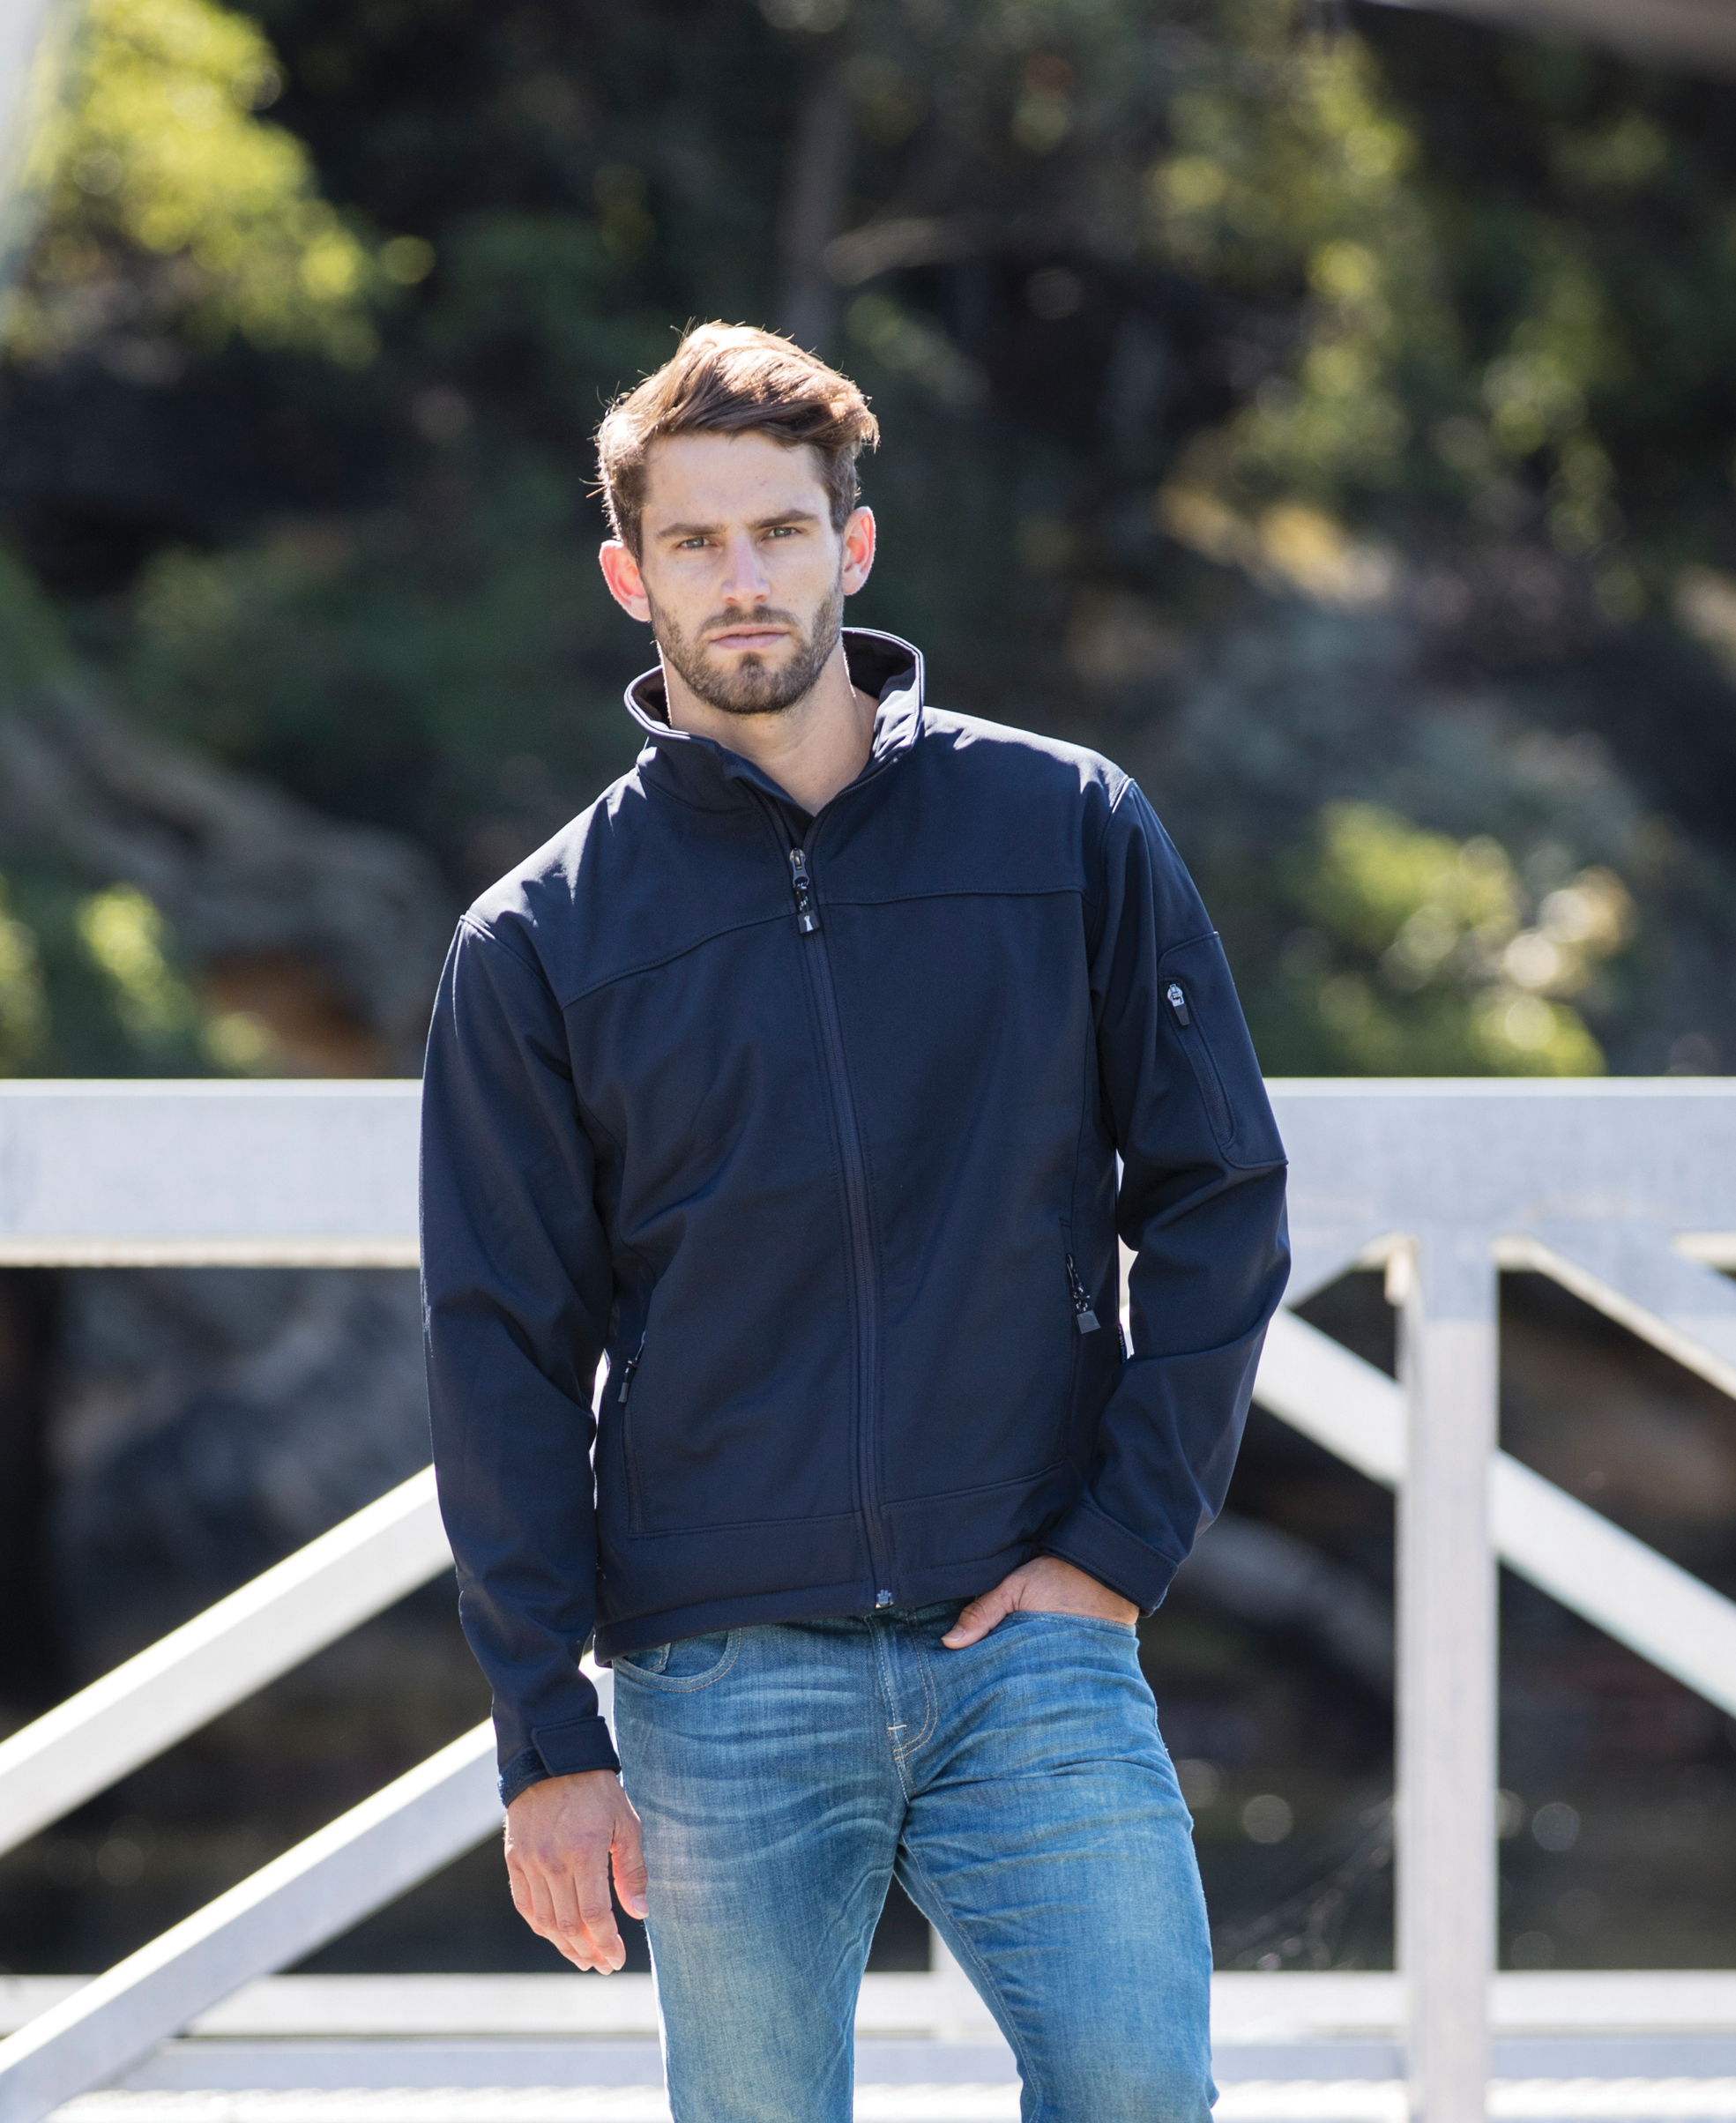 Beacon Perkins Wind and Water Repellent Softshell Jacket in Navy